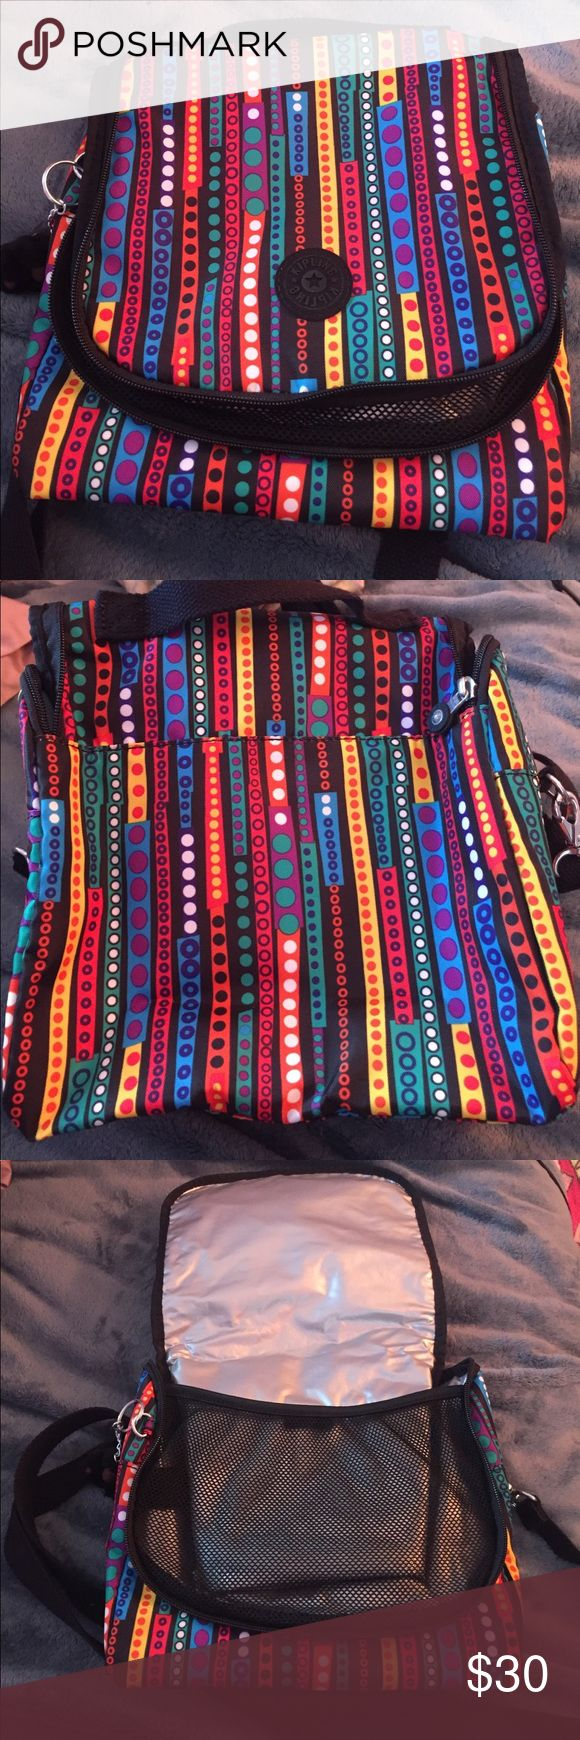 NEW Kipling Lunch Bag Brand New and never used colorful Kipling lunch bag. Front unzips with mesh netting and silver insulation inside. Handle on top of lunch bag and longer adjustable cross body strap. Comes with gorilla key chain. Kipling Bags